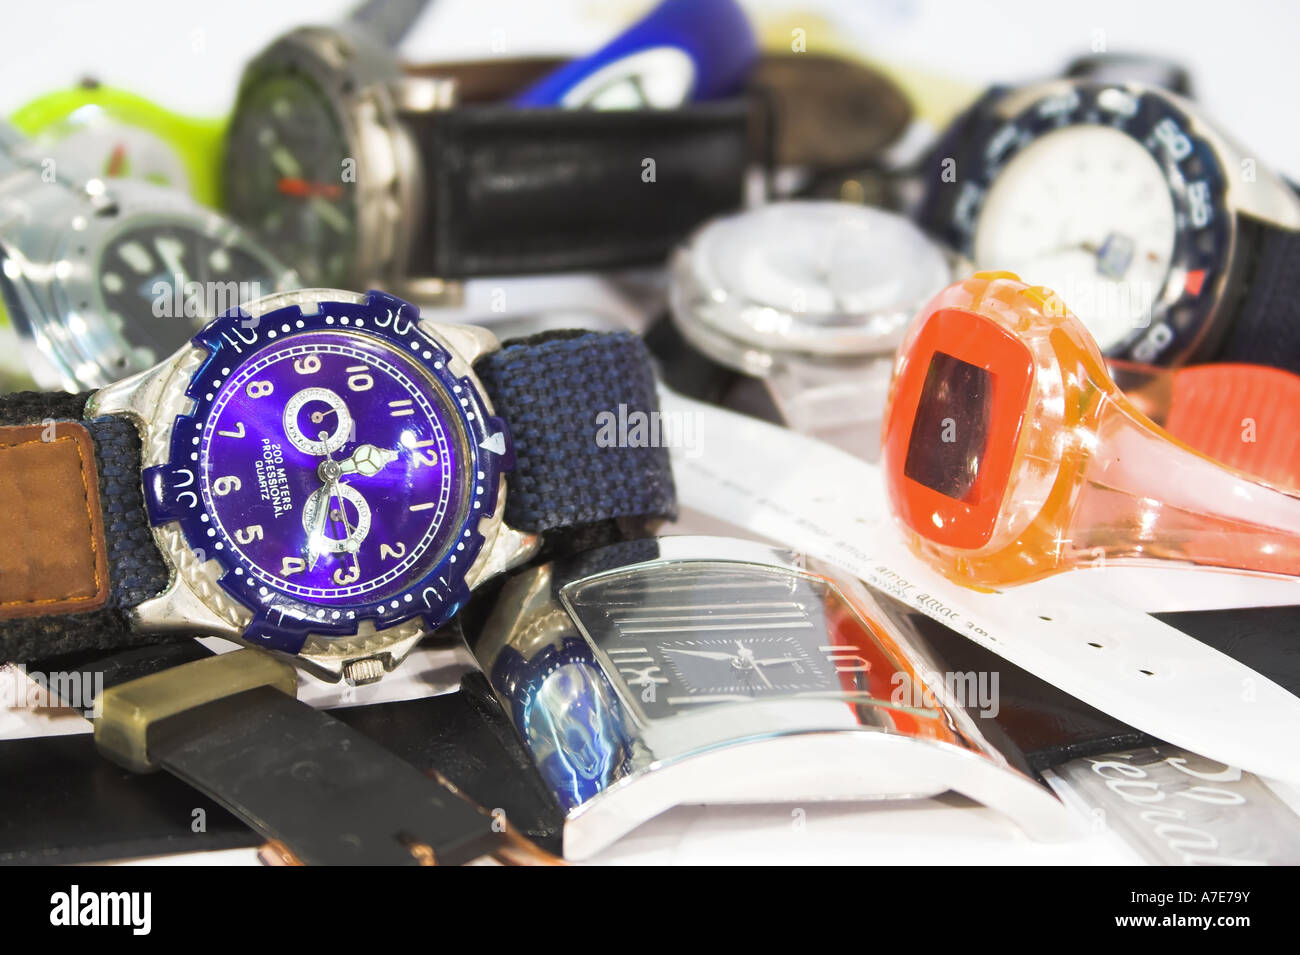 Pile of various wristwatches - Stock Image